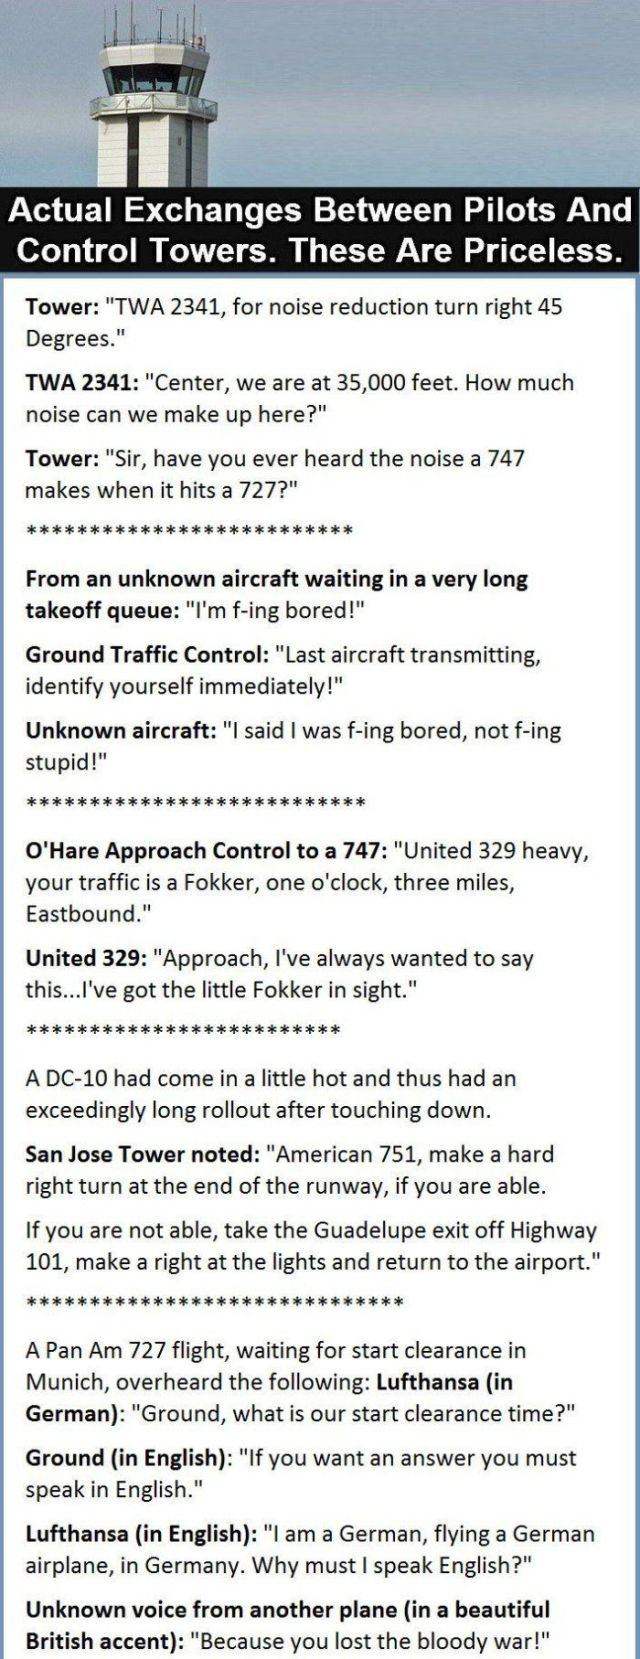 Real Conversations between Pilots and Air Traffic Controllers